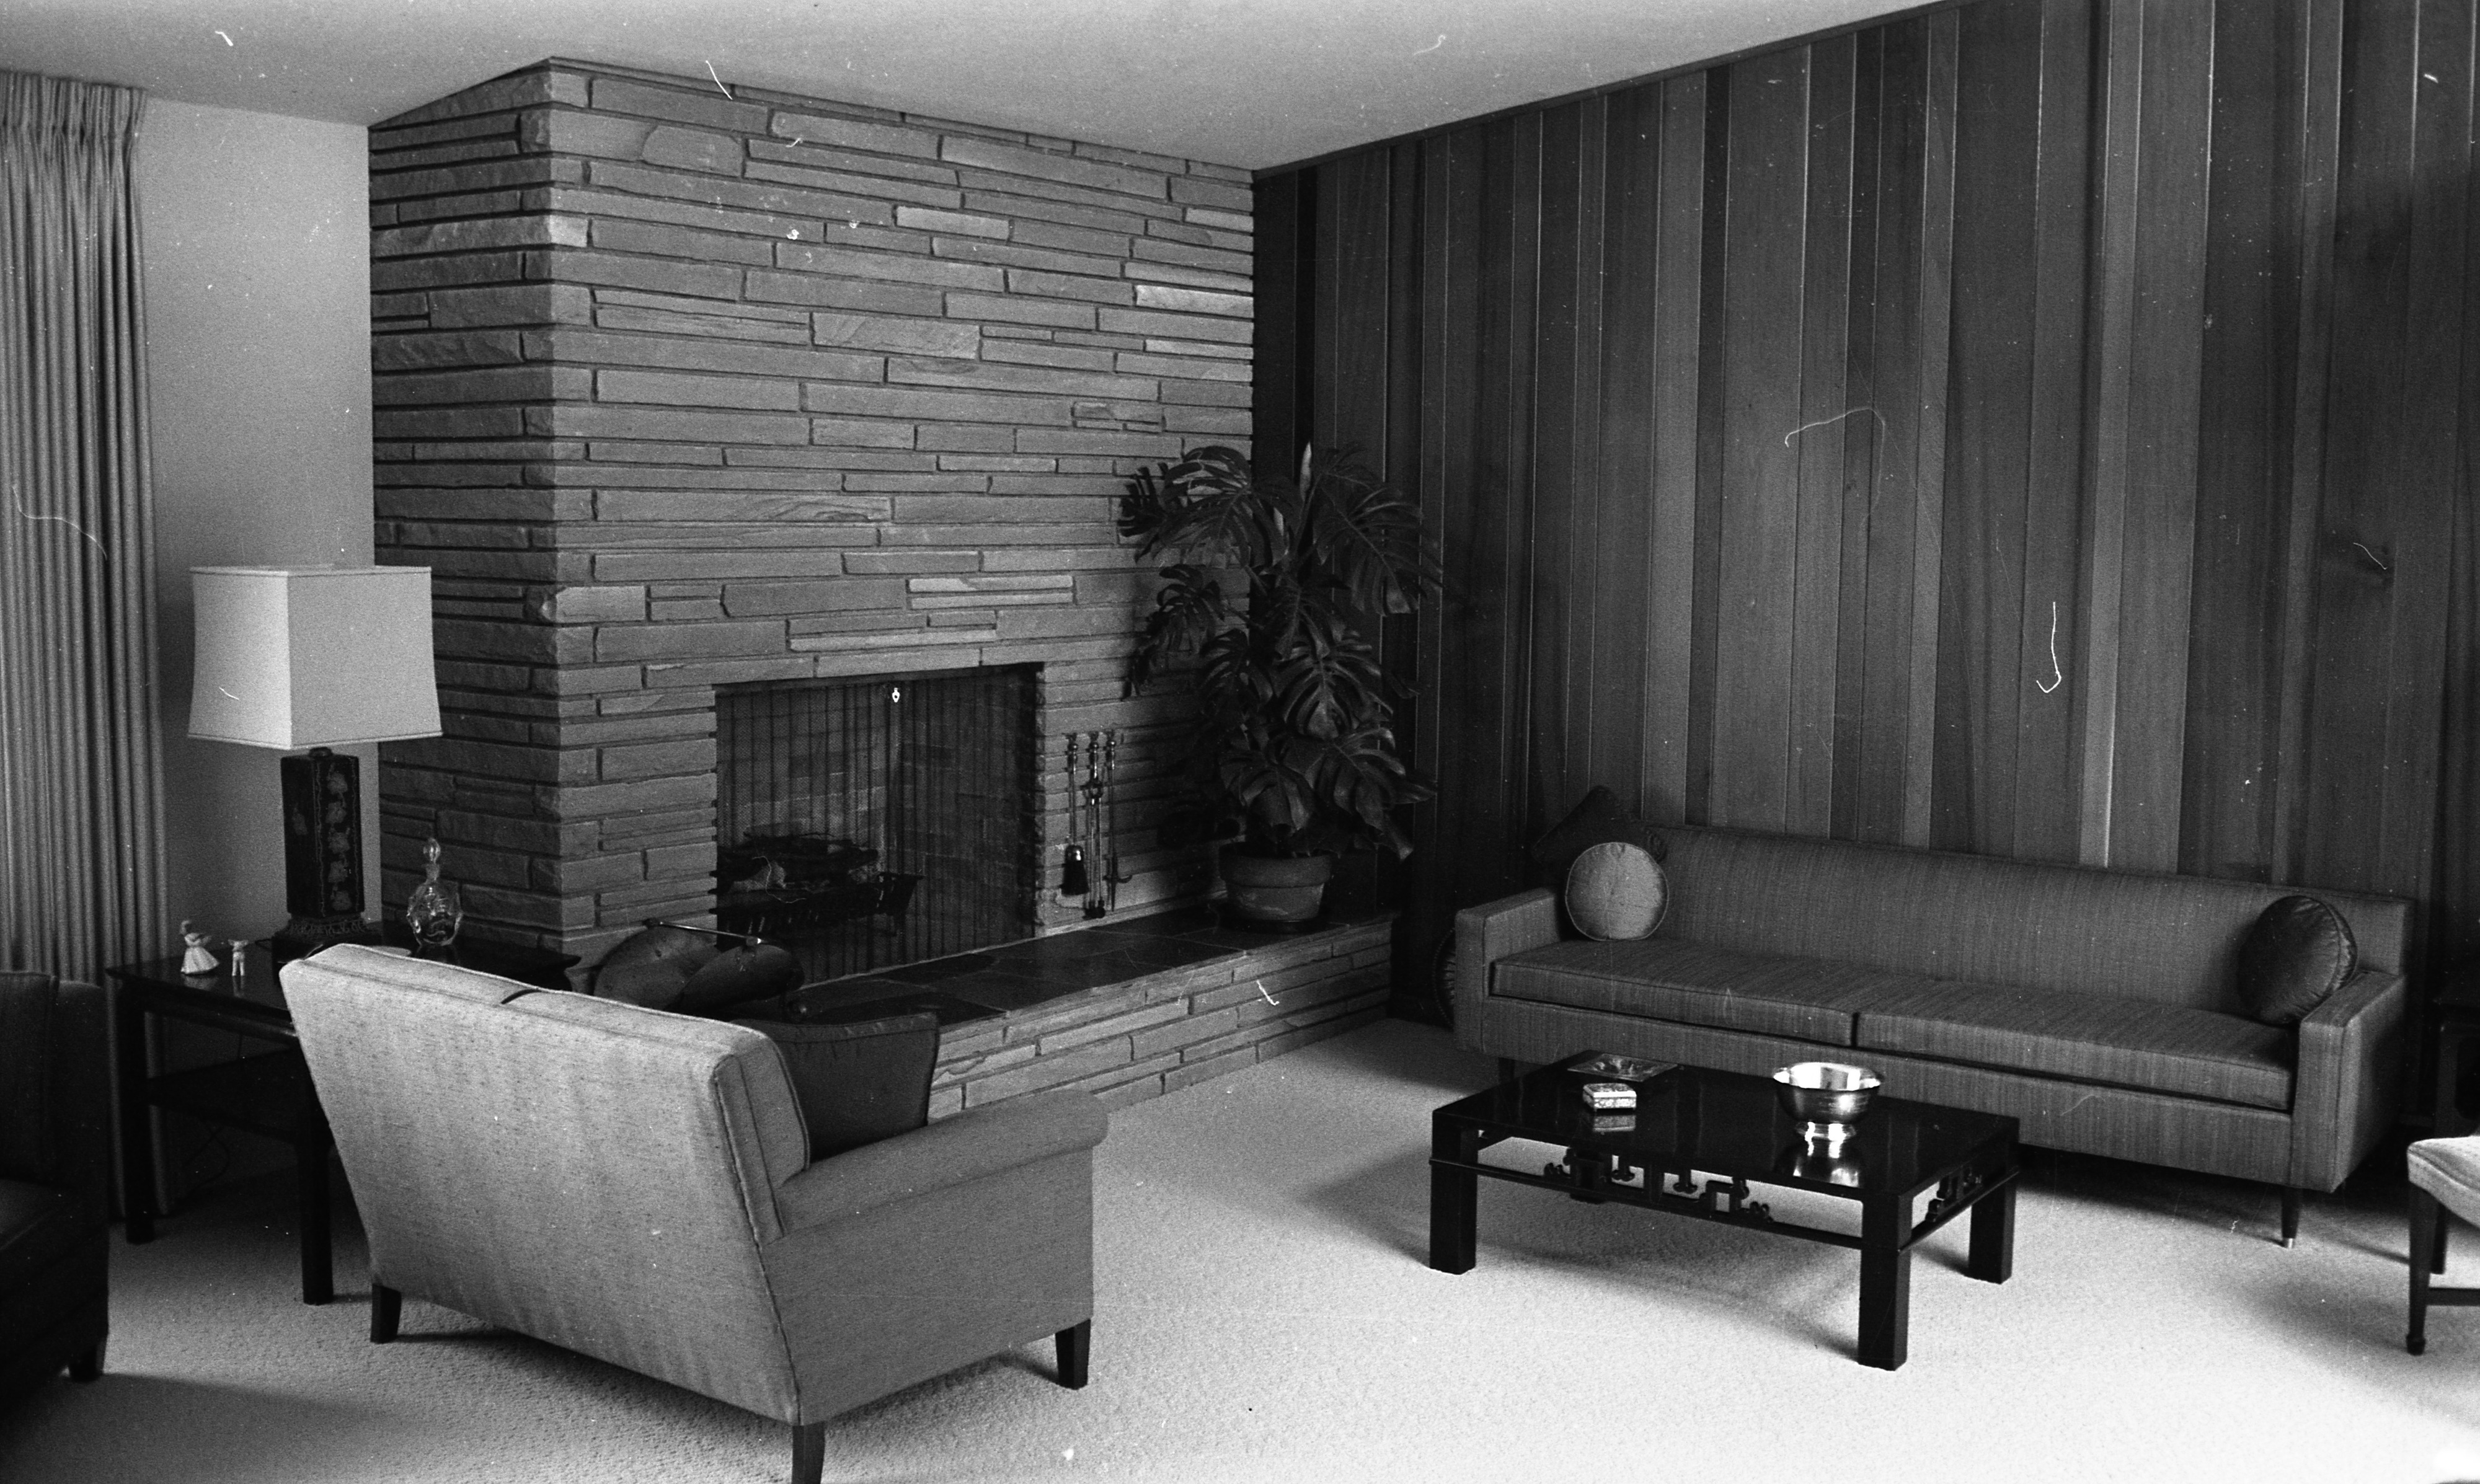 Living Room of Clare and Carmen Schwegler Home on Londonderry Rd, August 1958 image